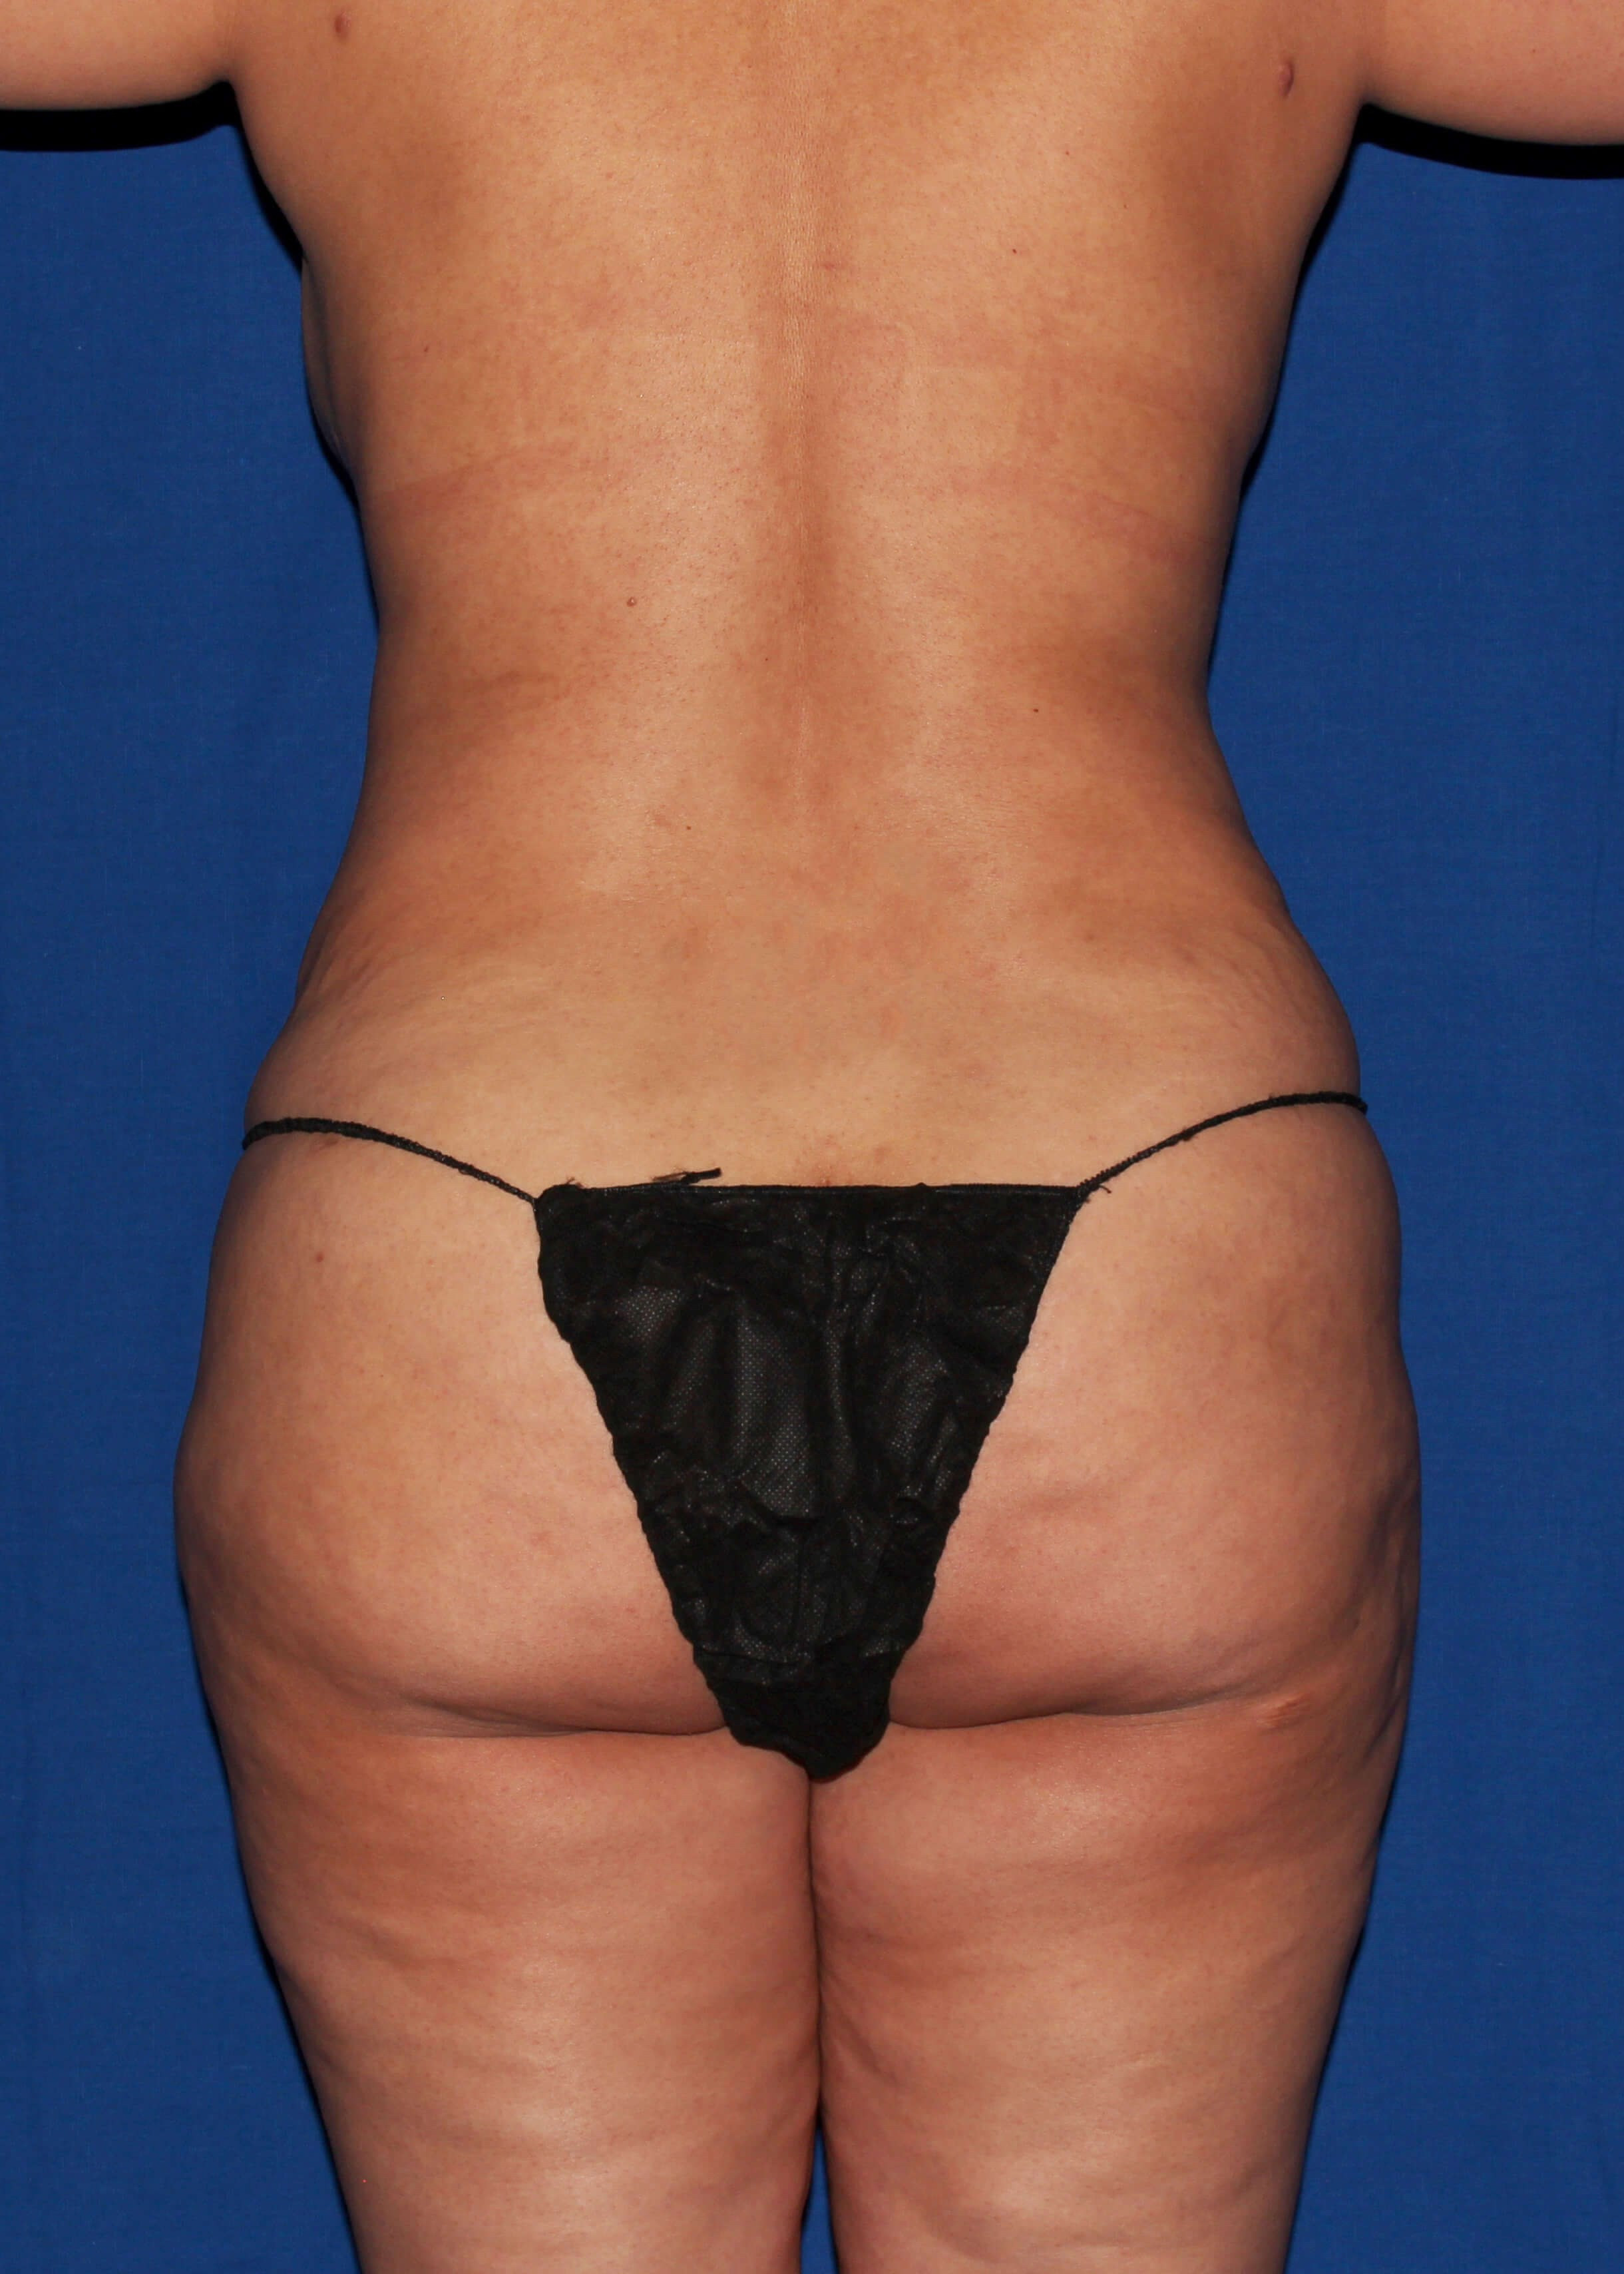 Before Tummy Tuck - Back View